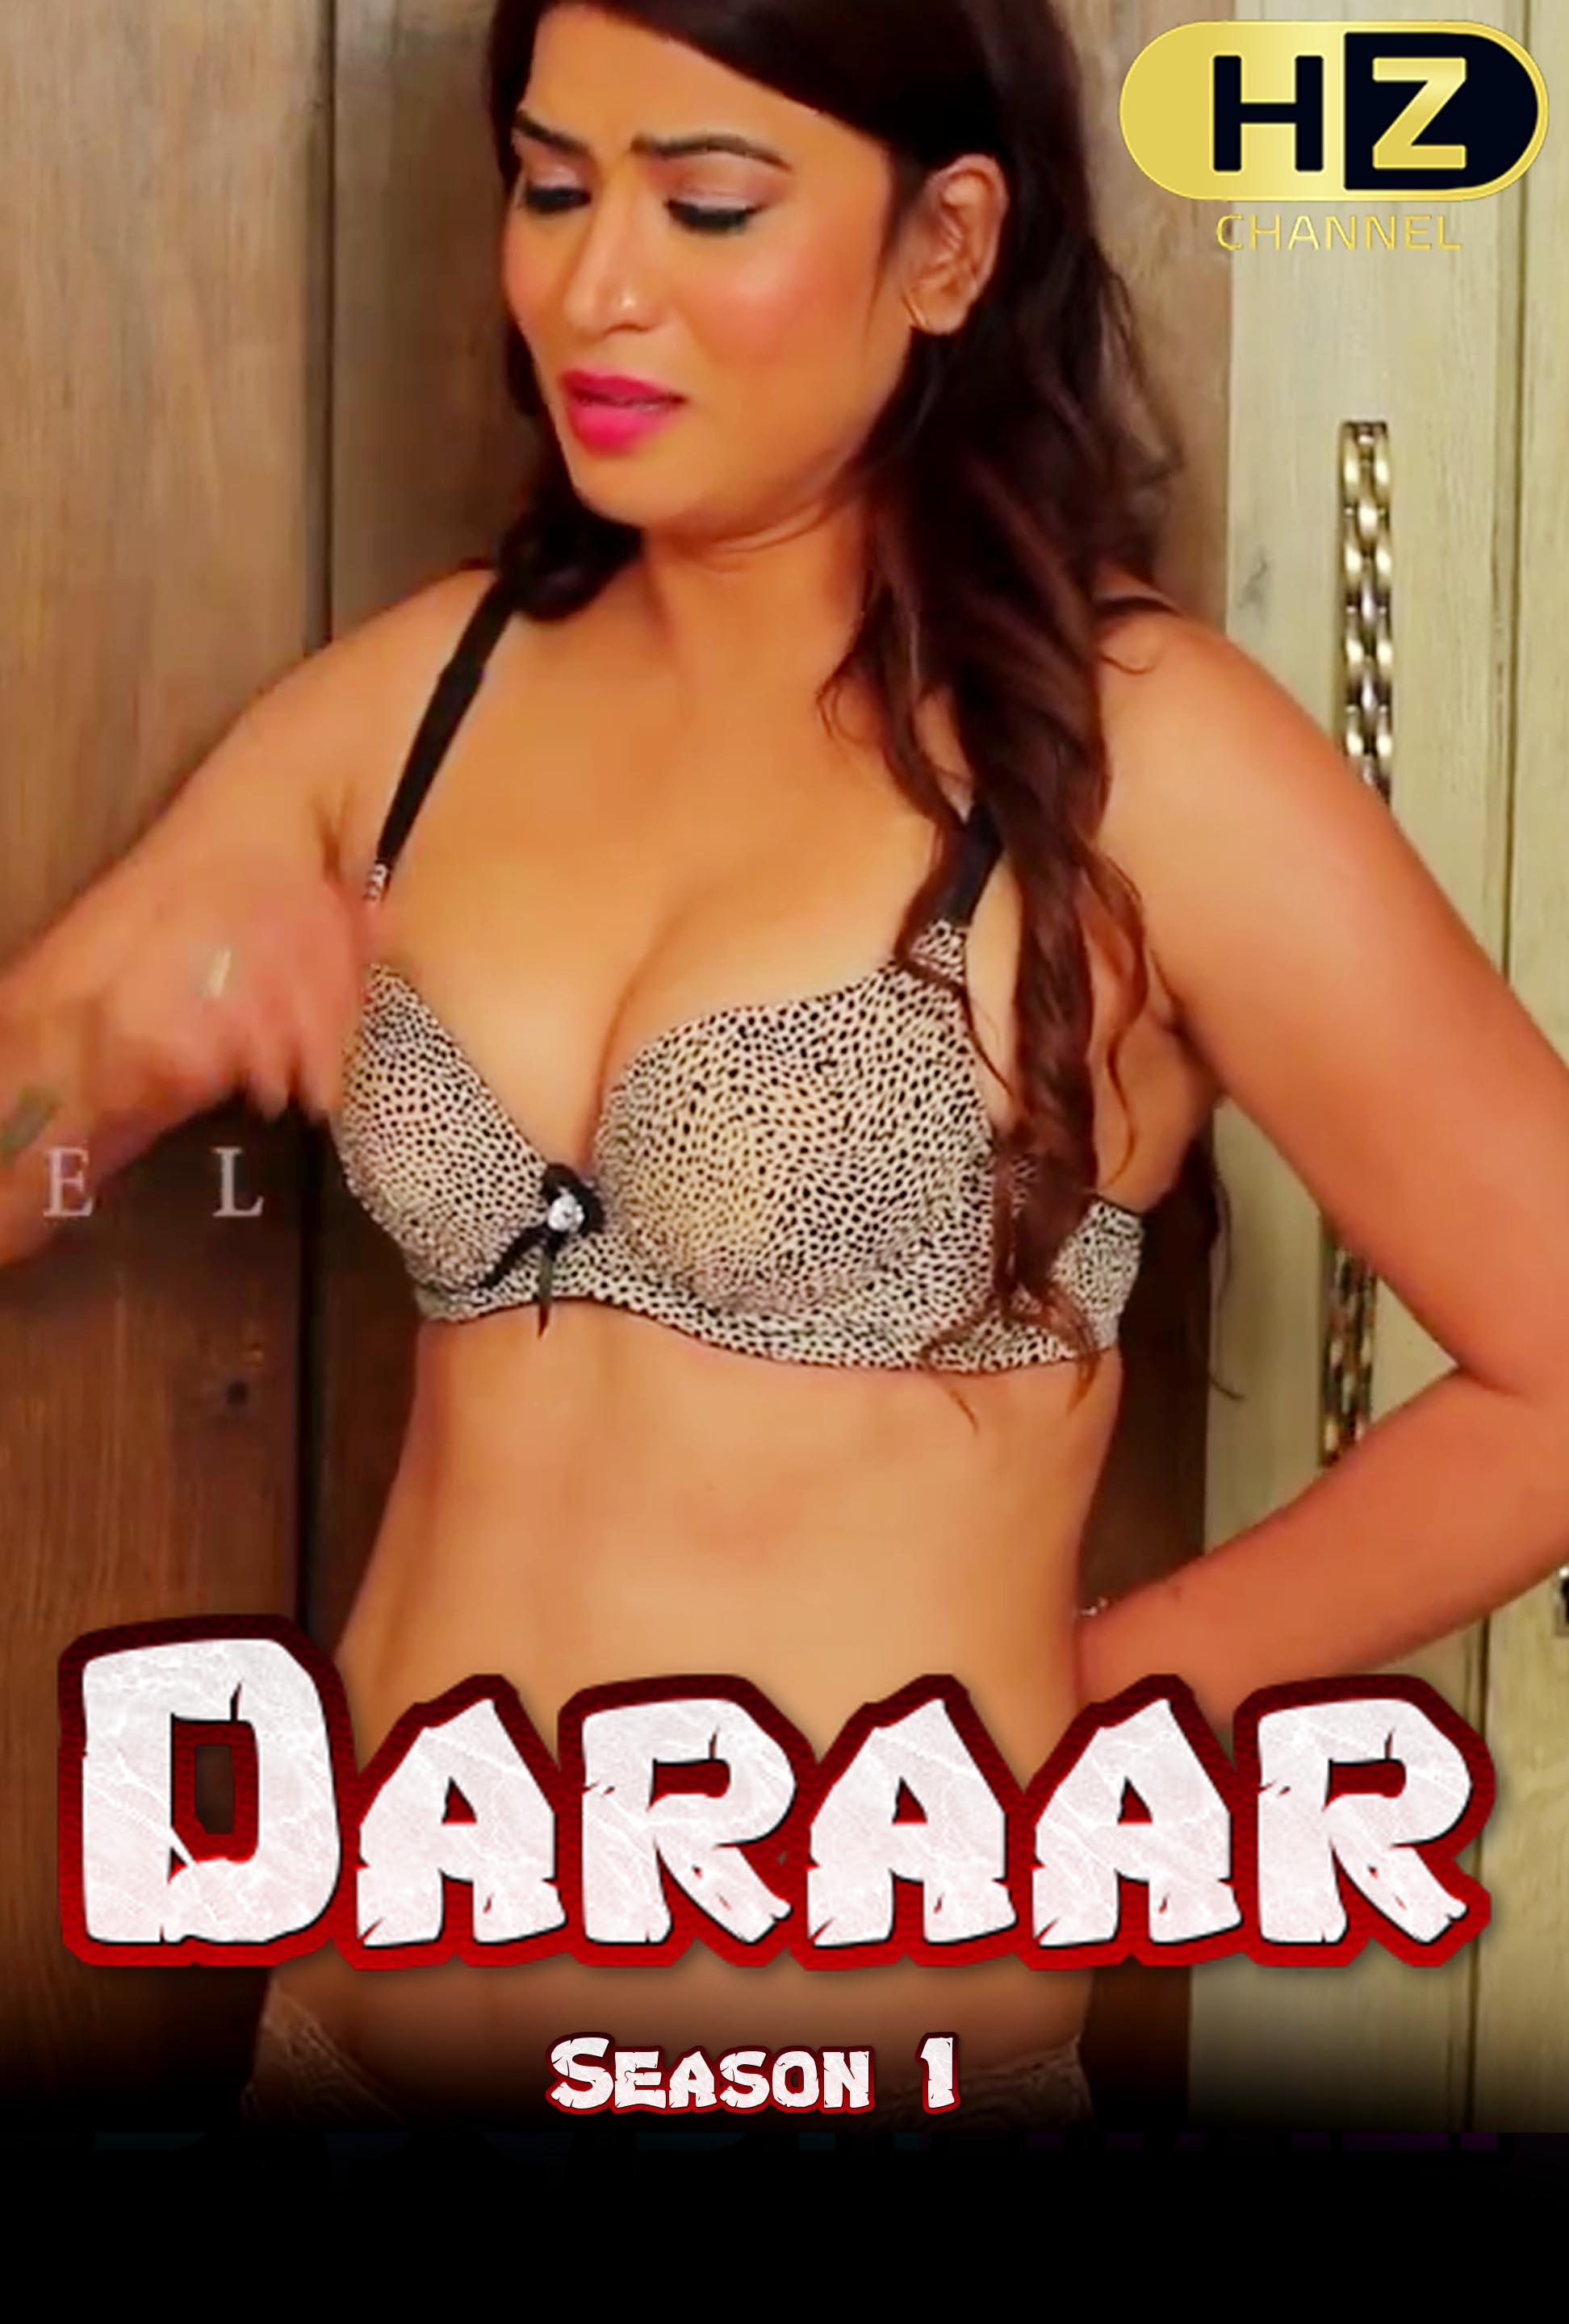 Daraar 2020 S01E02 Hindi Hootzy Channel Original Web Series 720p HDRip 182MB Download